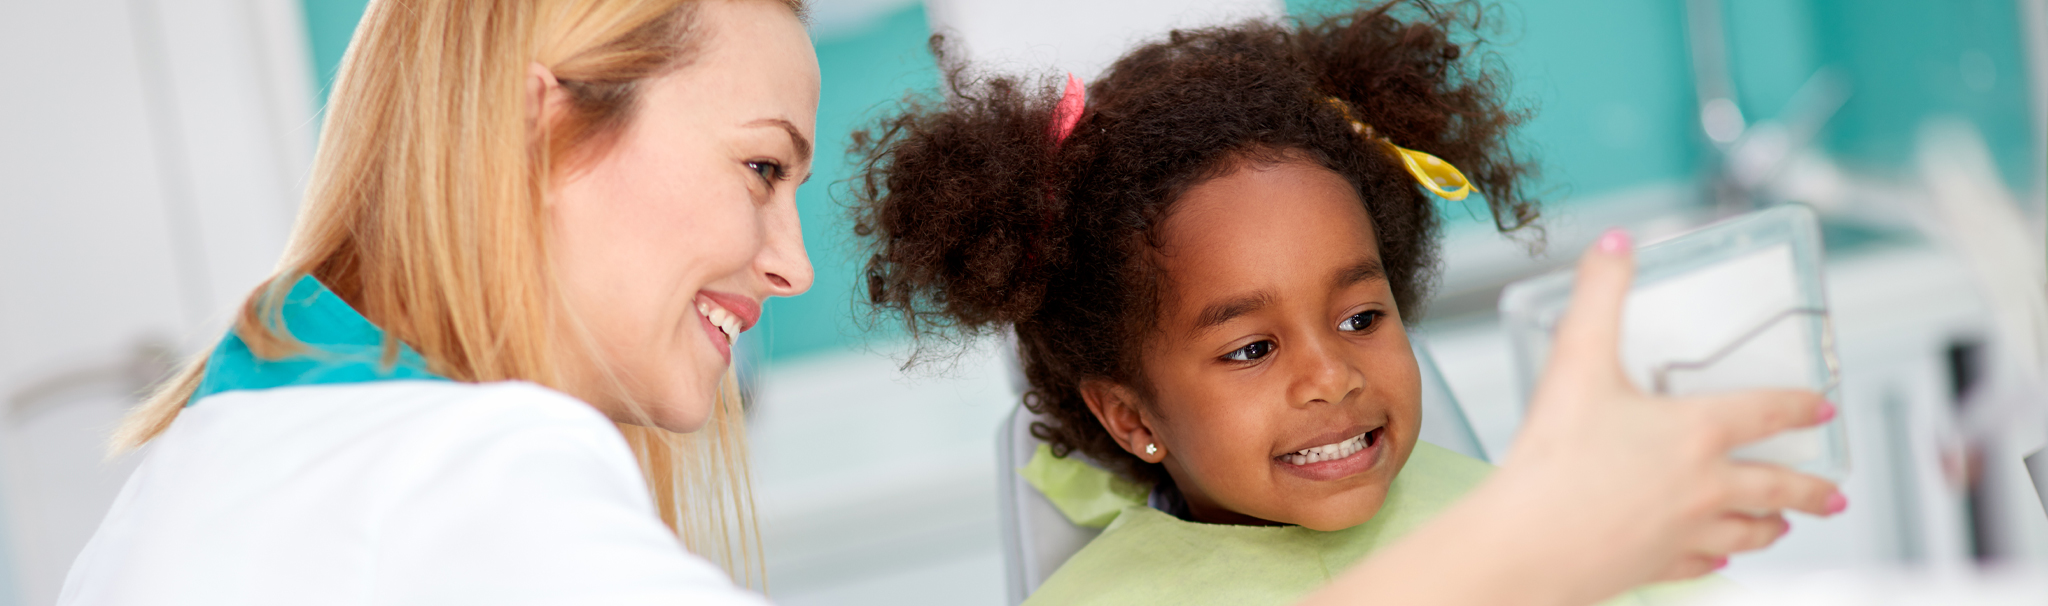 child with dentist smiling in a mirror